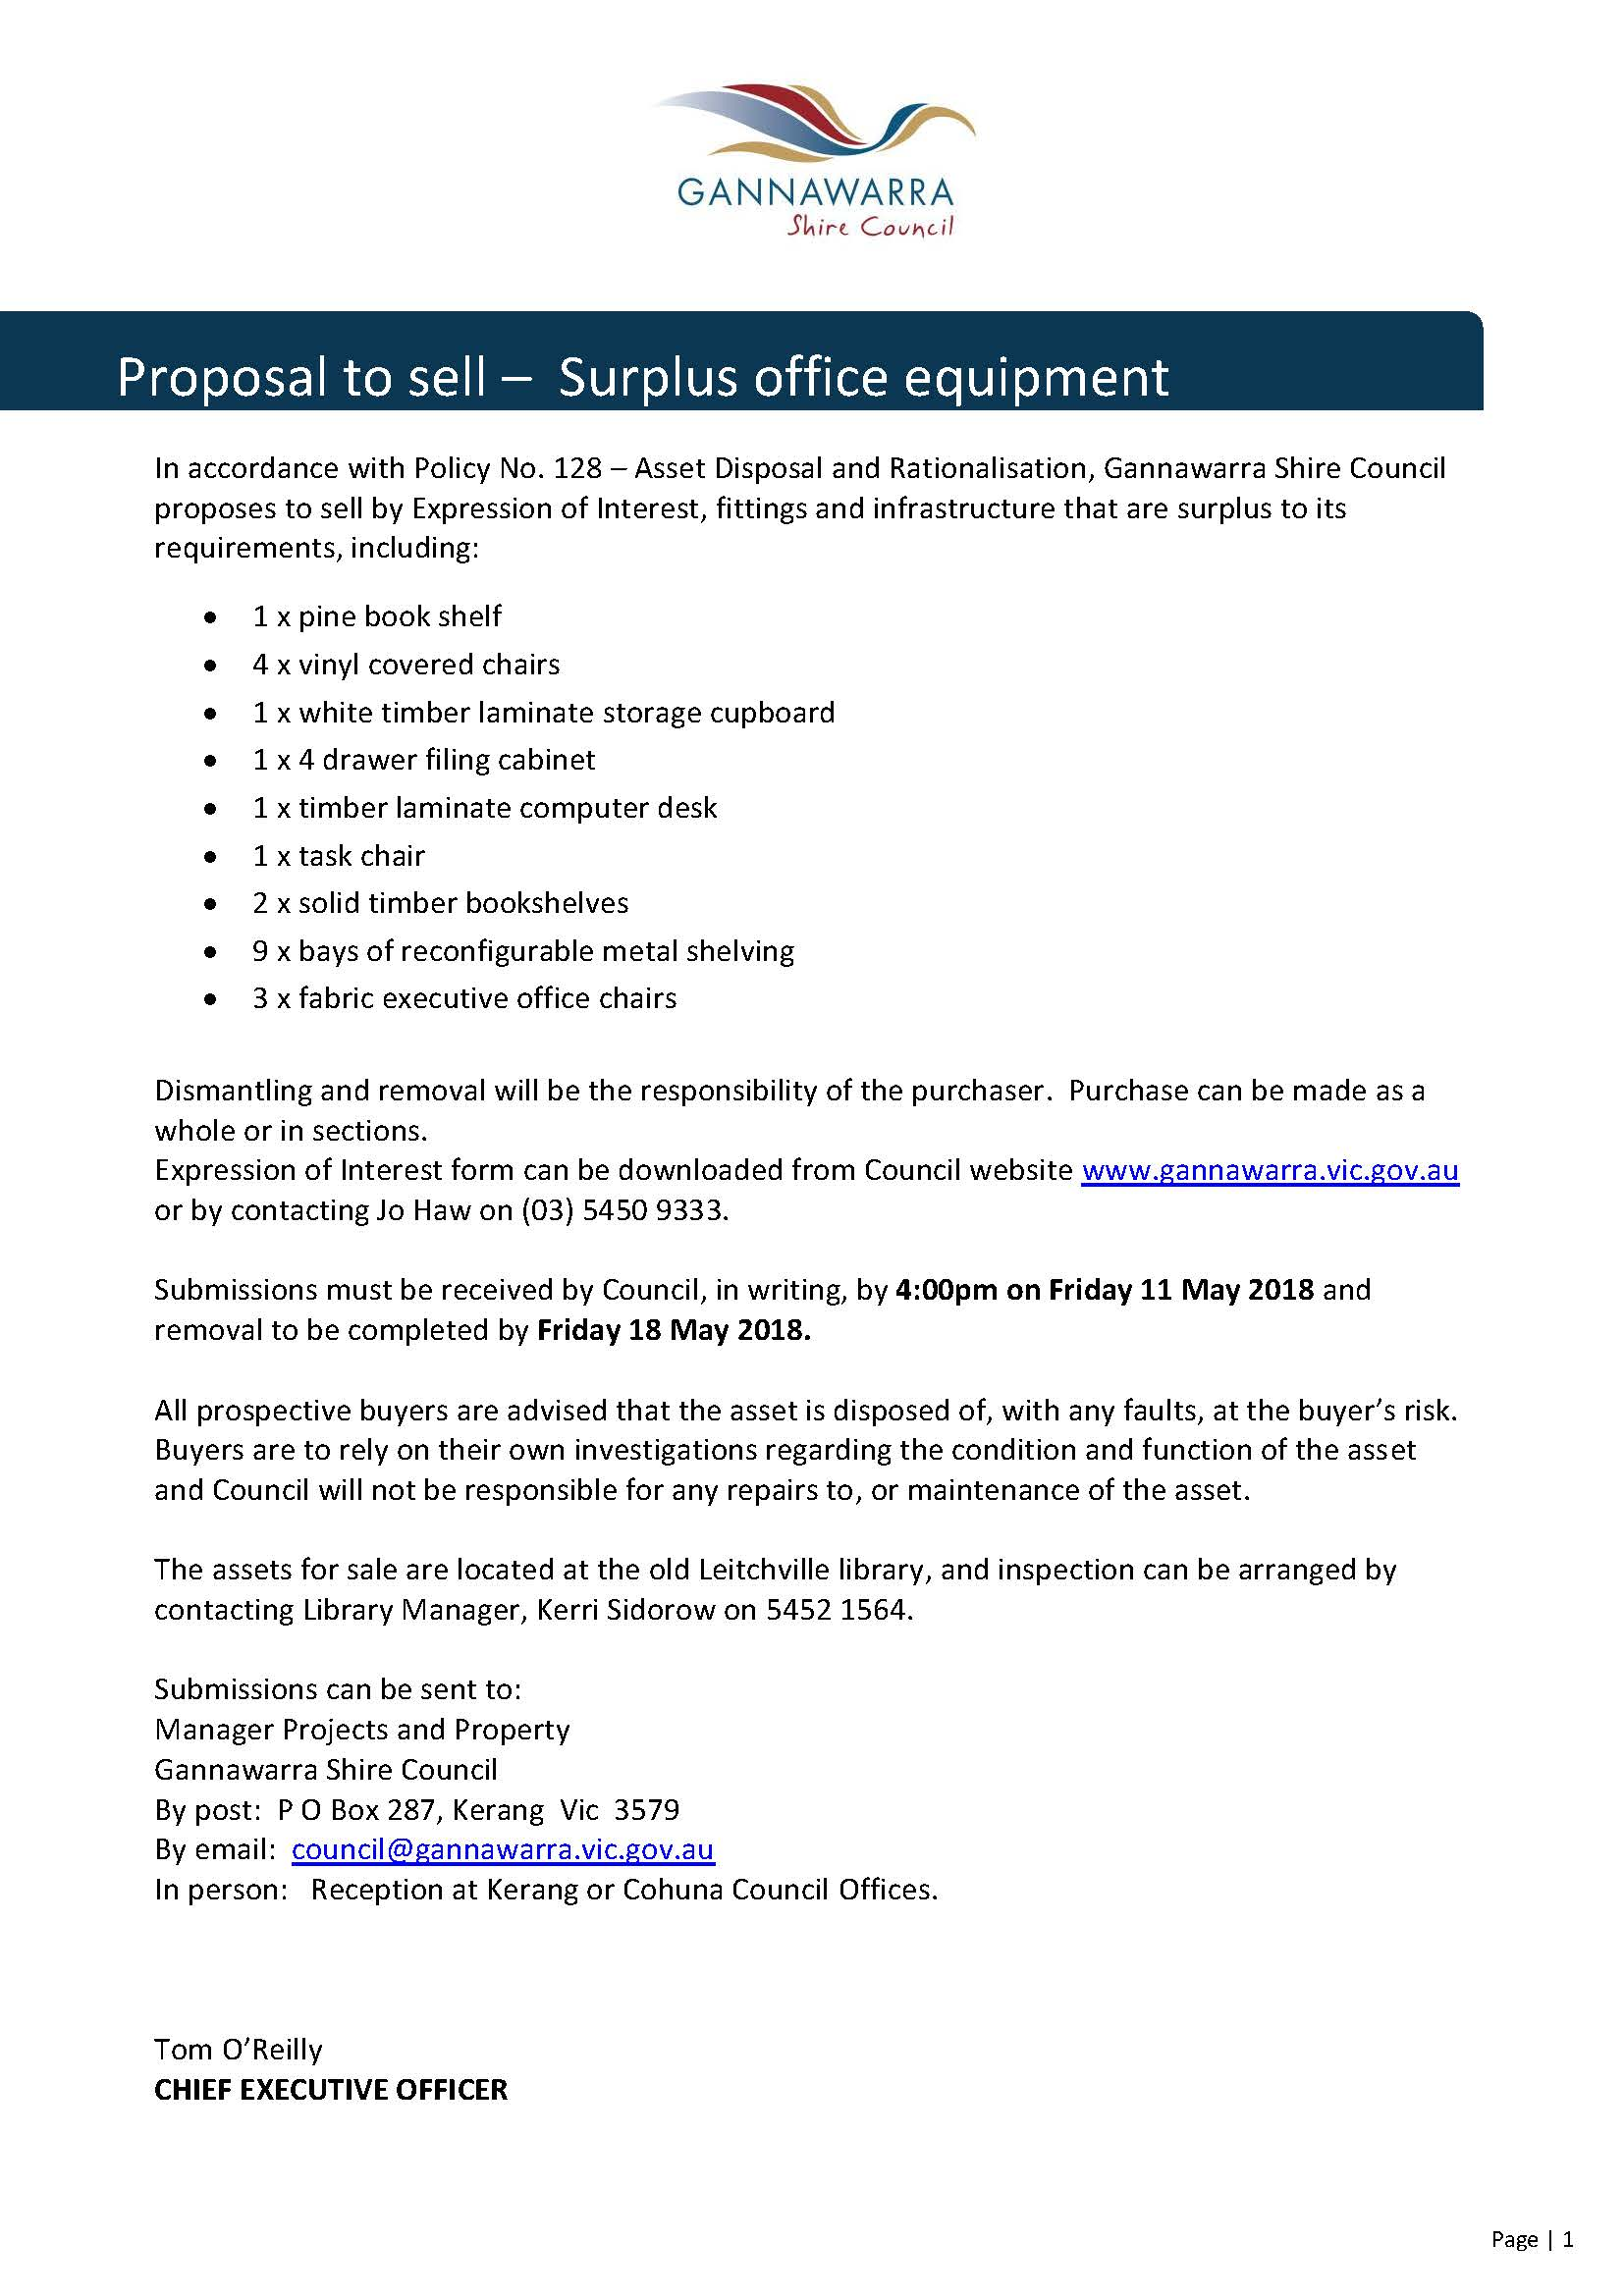 Surplus Council furniture and fittings sale_EOI advertisement_April2018.jpg